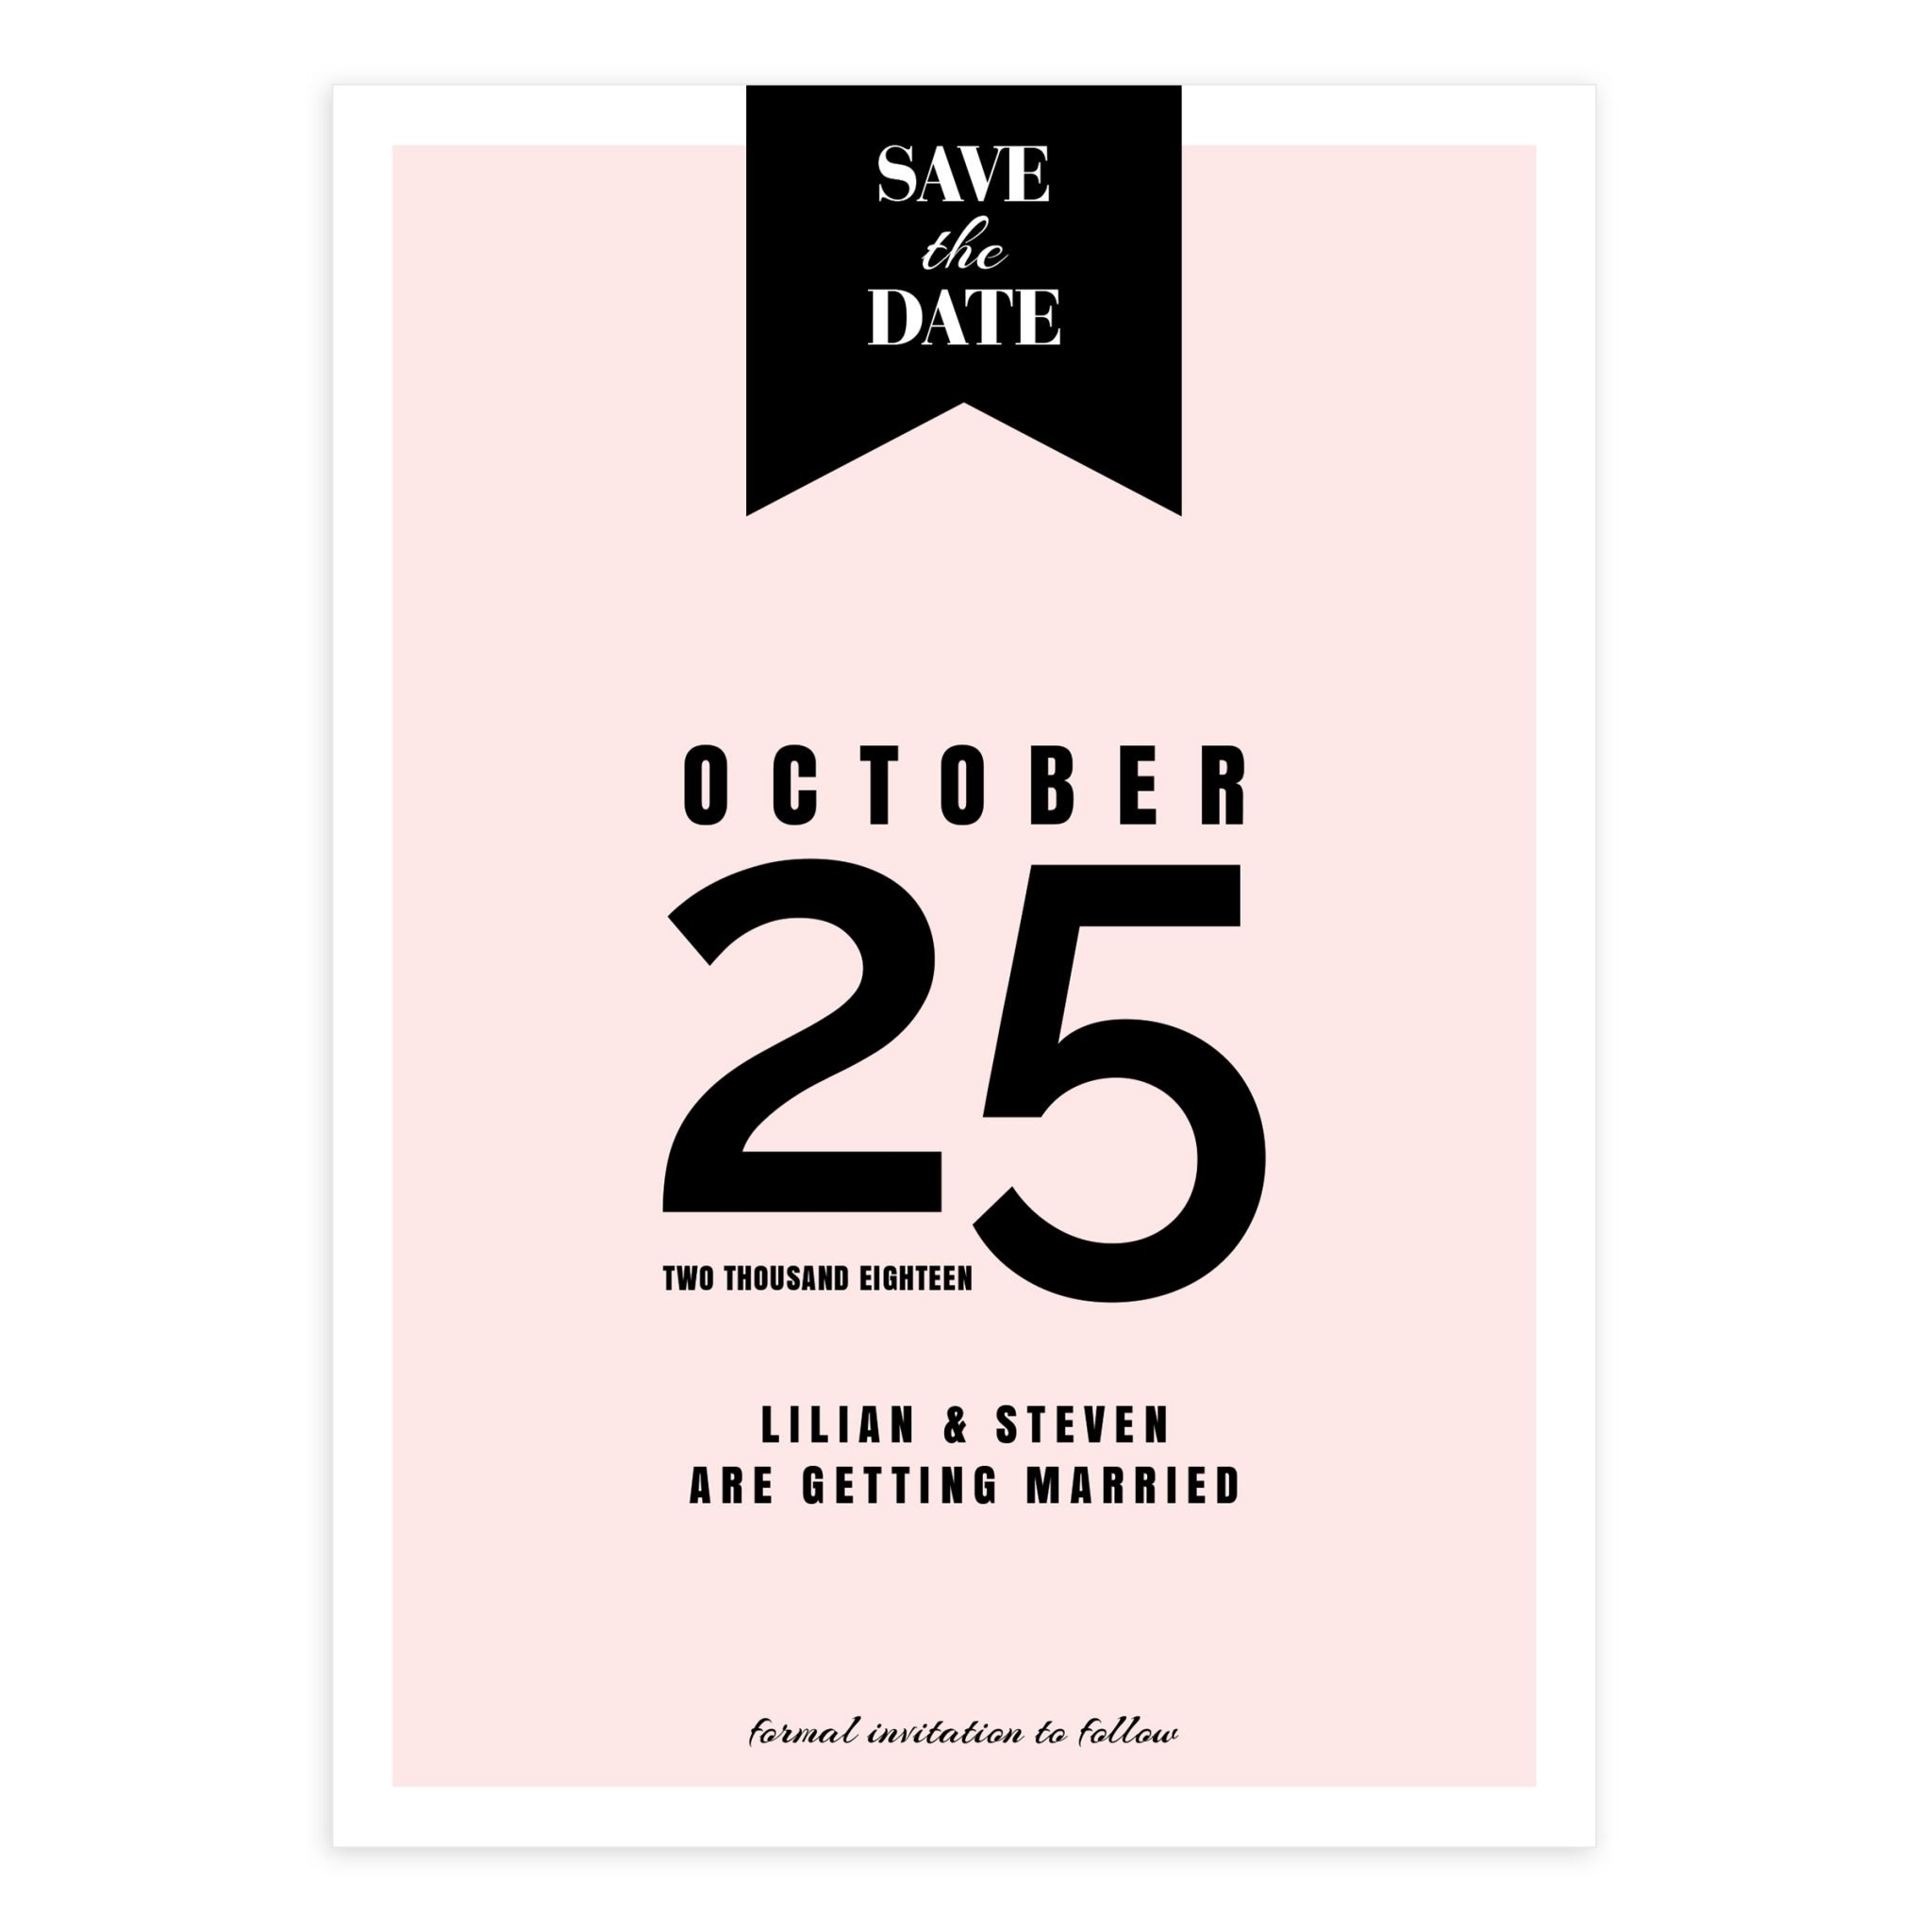 Banner Save The Date Psd Template  Mockaroon Regarding Save The Date Banner Template